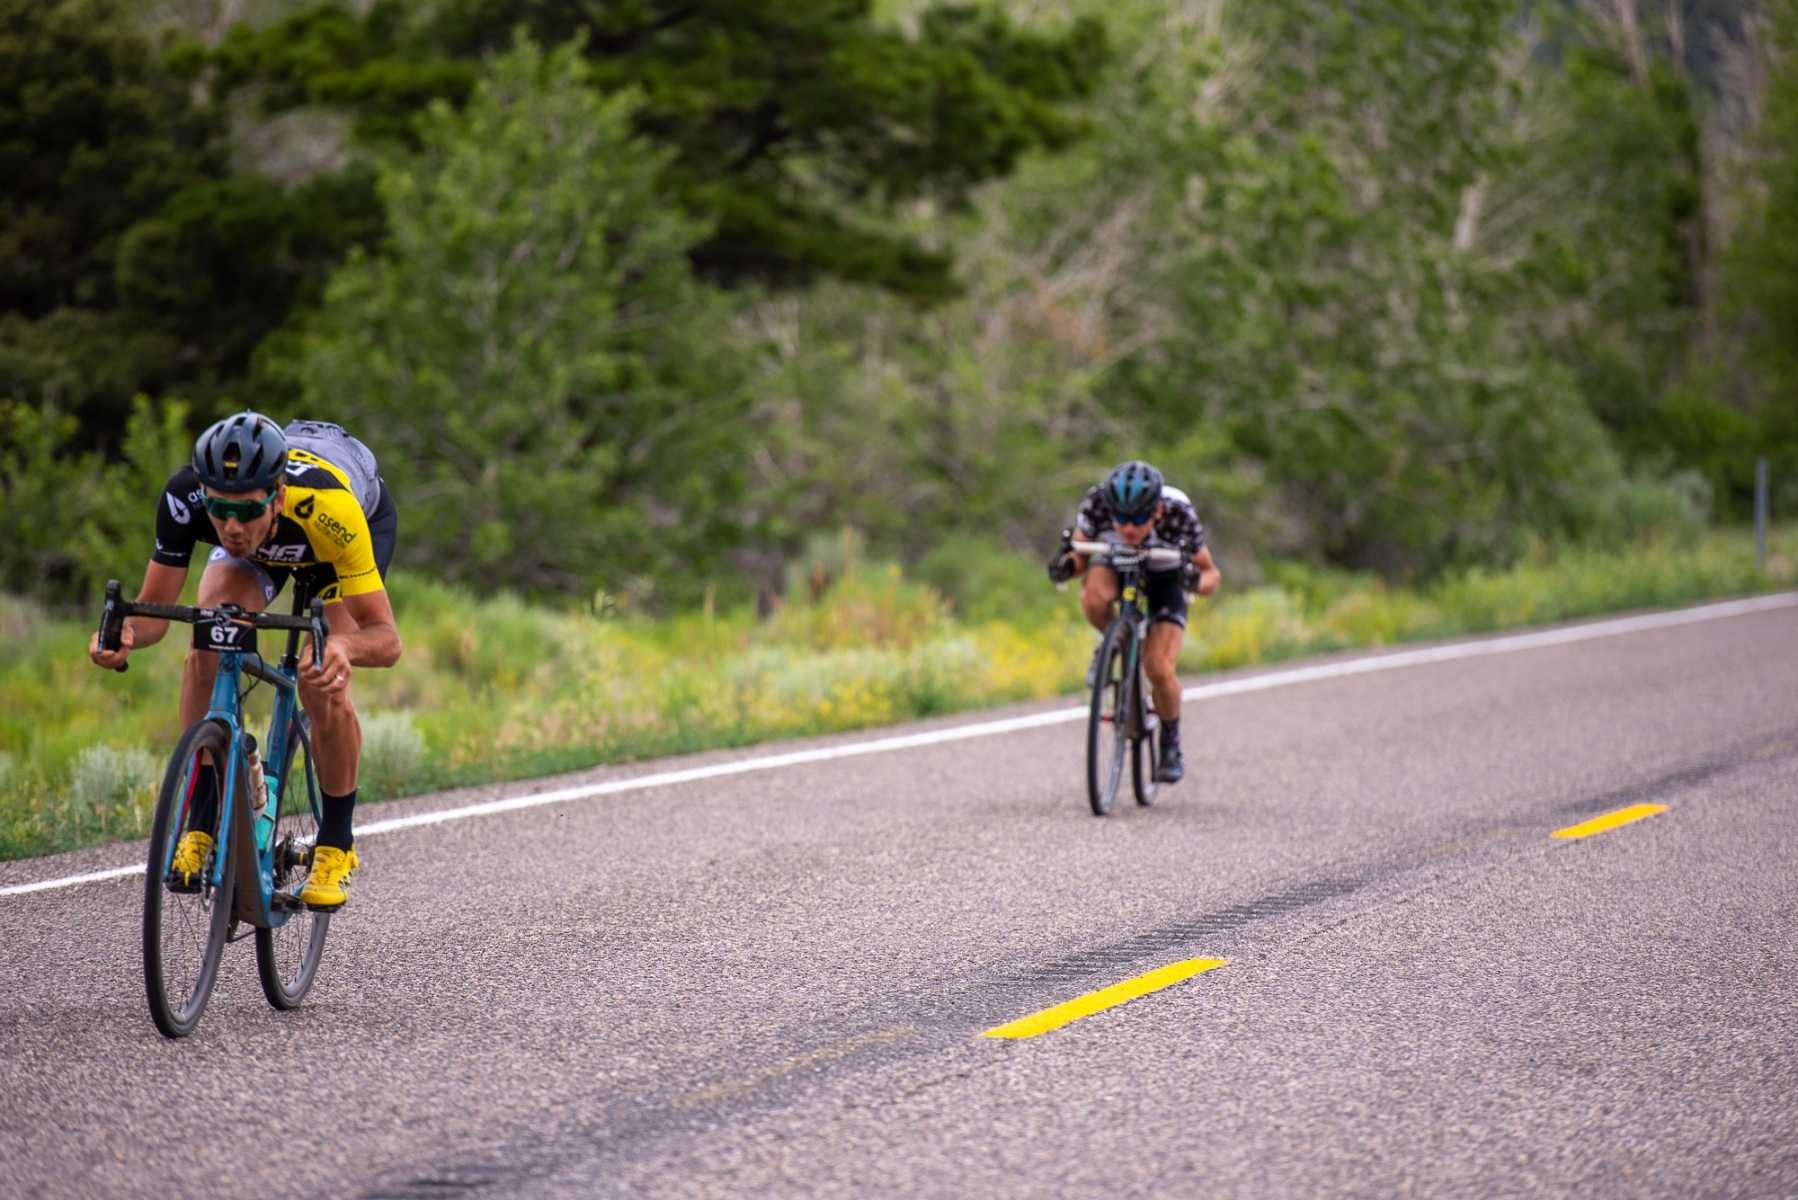 Jamey Driscoll (DNA Cycling-Mavic) leads Alex Grant (Gear Rush) down the Highway 153 descent. Photo: Steven L. Sheffield